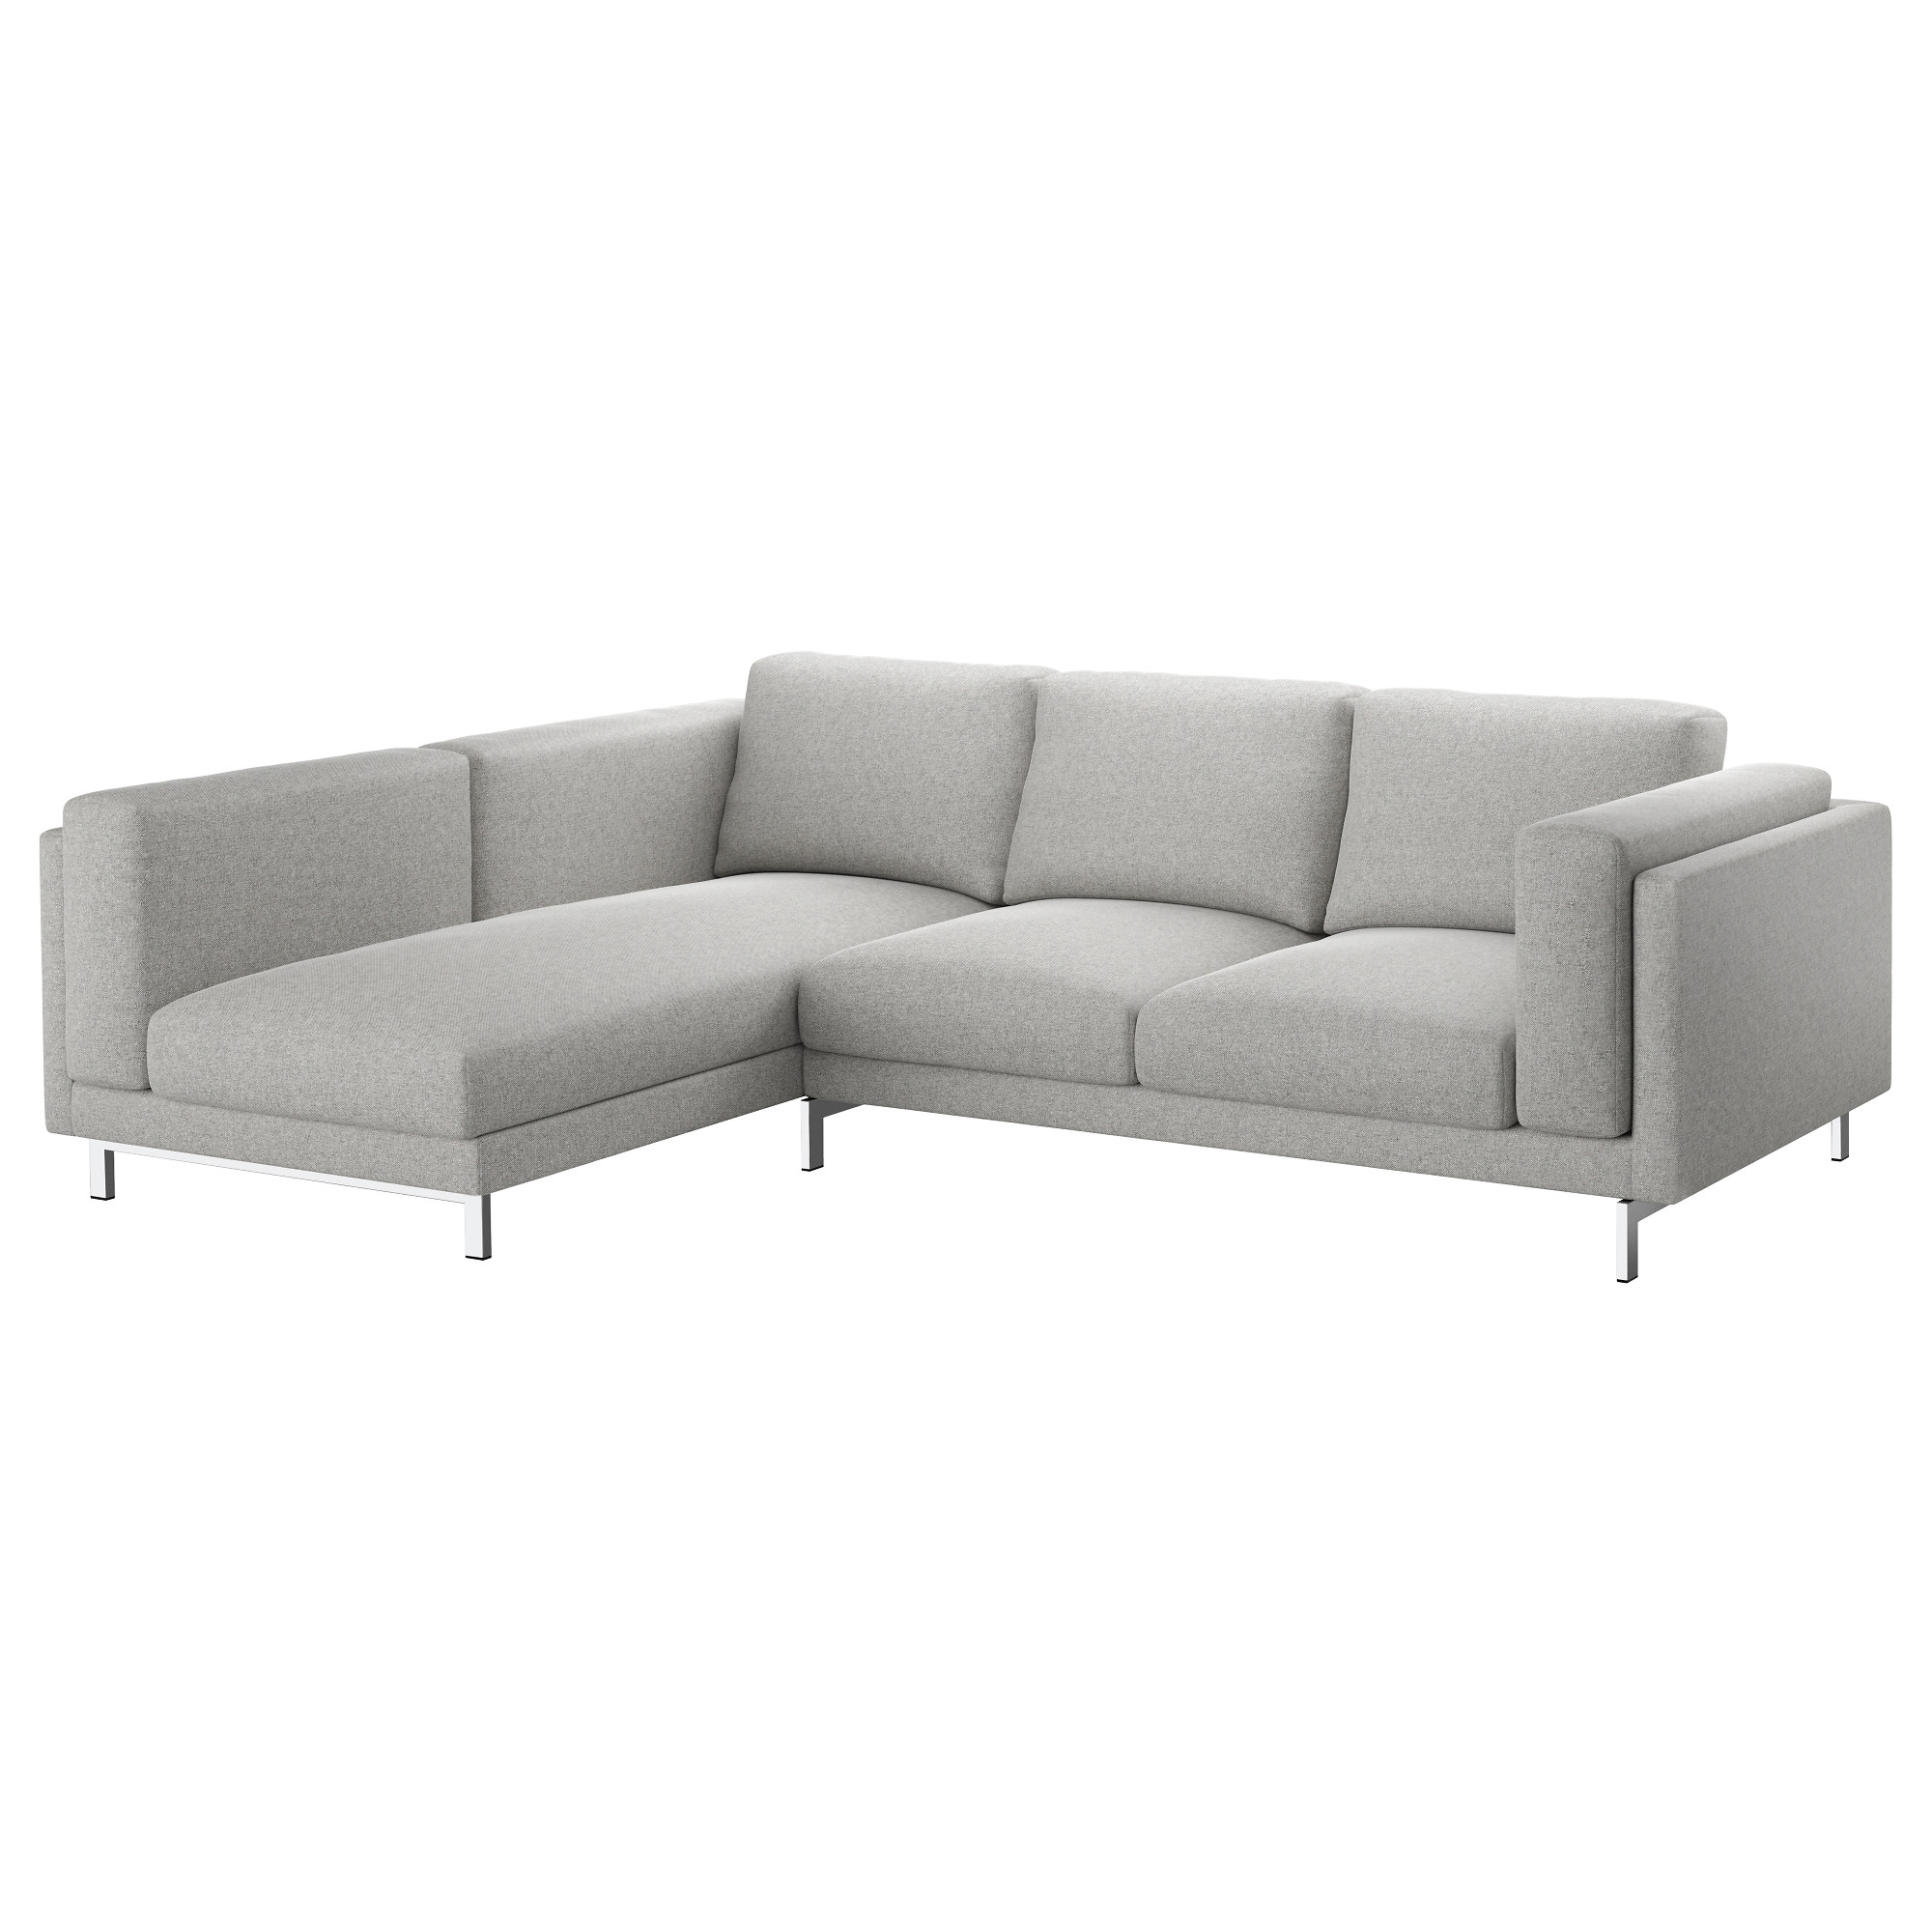 Nice NOCKEBY Sofa   With Chaise, Left/Tallmyra White/black, Chrome Plated   IKEA